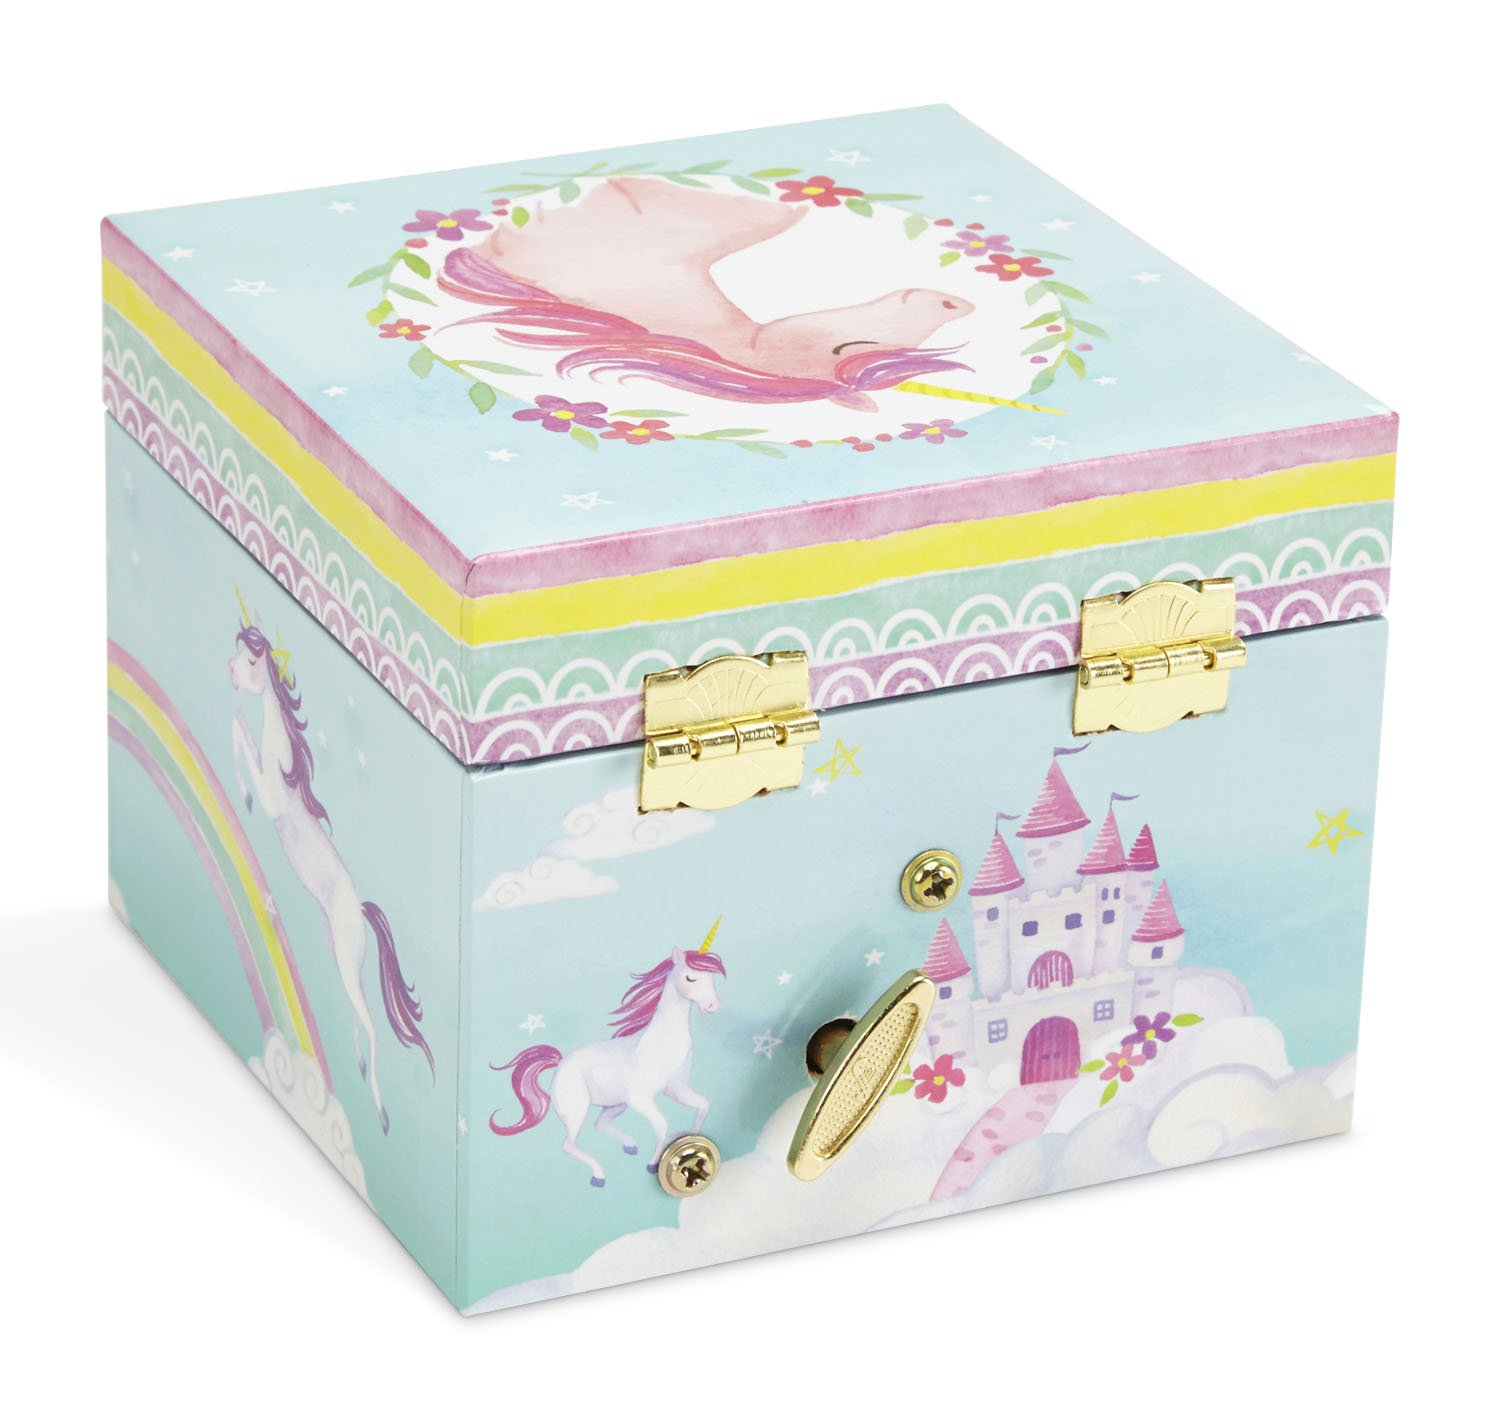 JewelKeeper Musical Jewelry Box, Unicorn Rainbow Design with Pullout Drawer, The Unicorn Tune by JewelKeeper (Image #5)